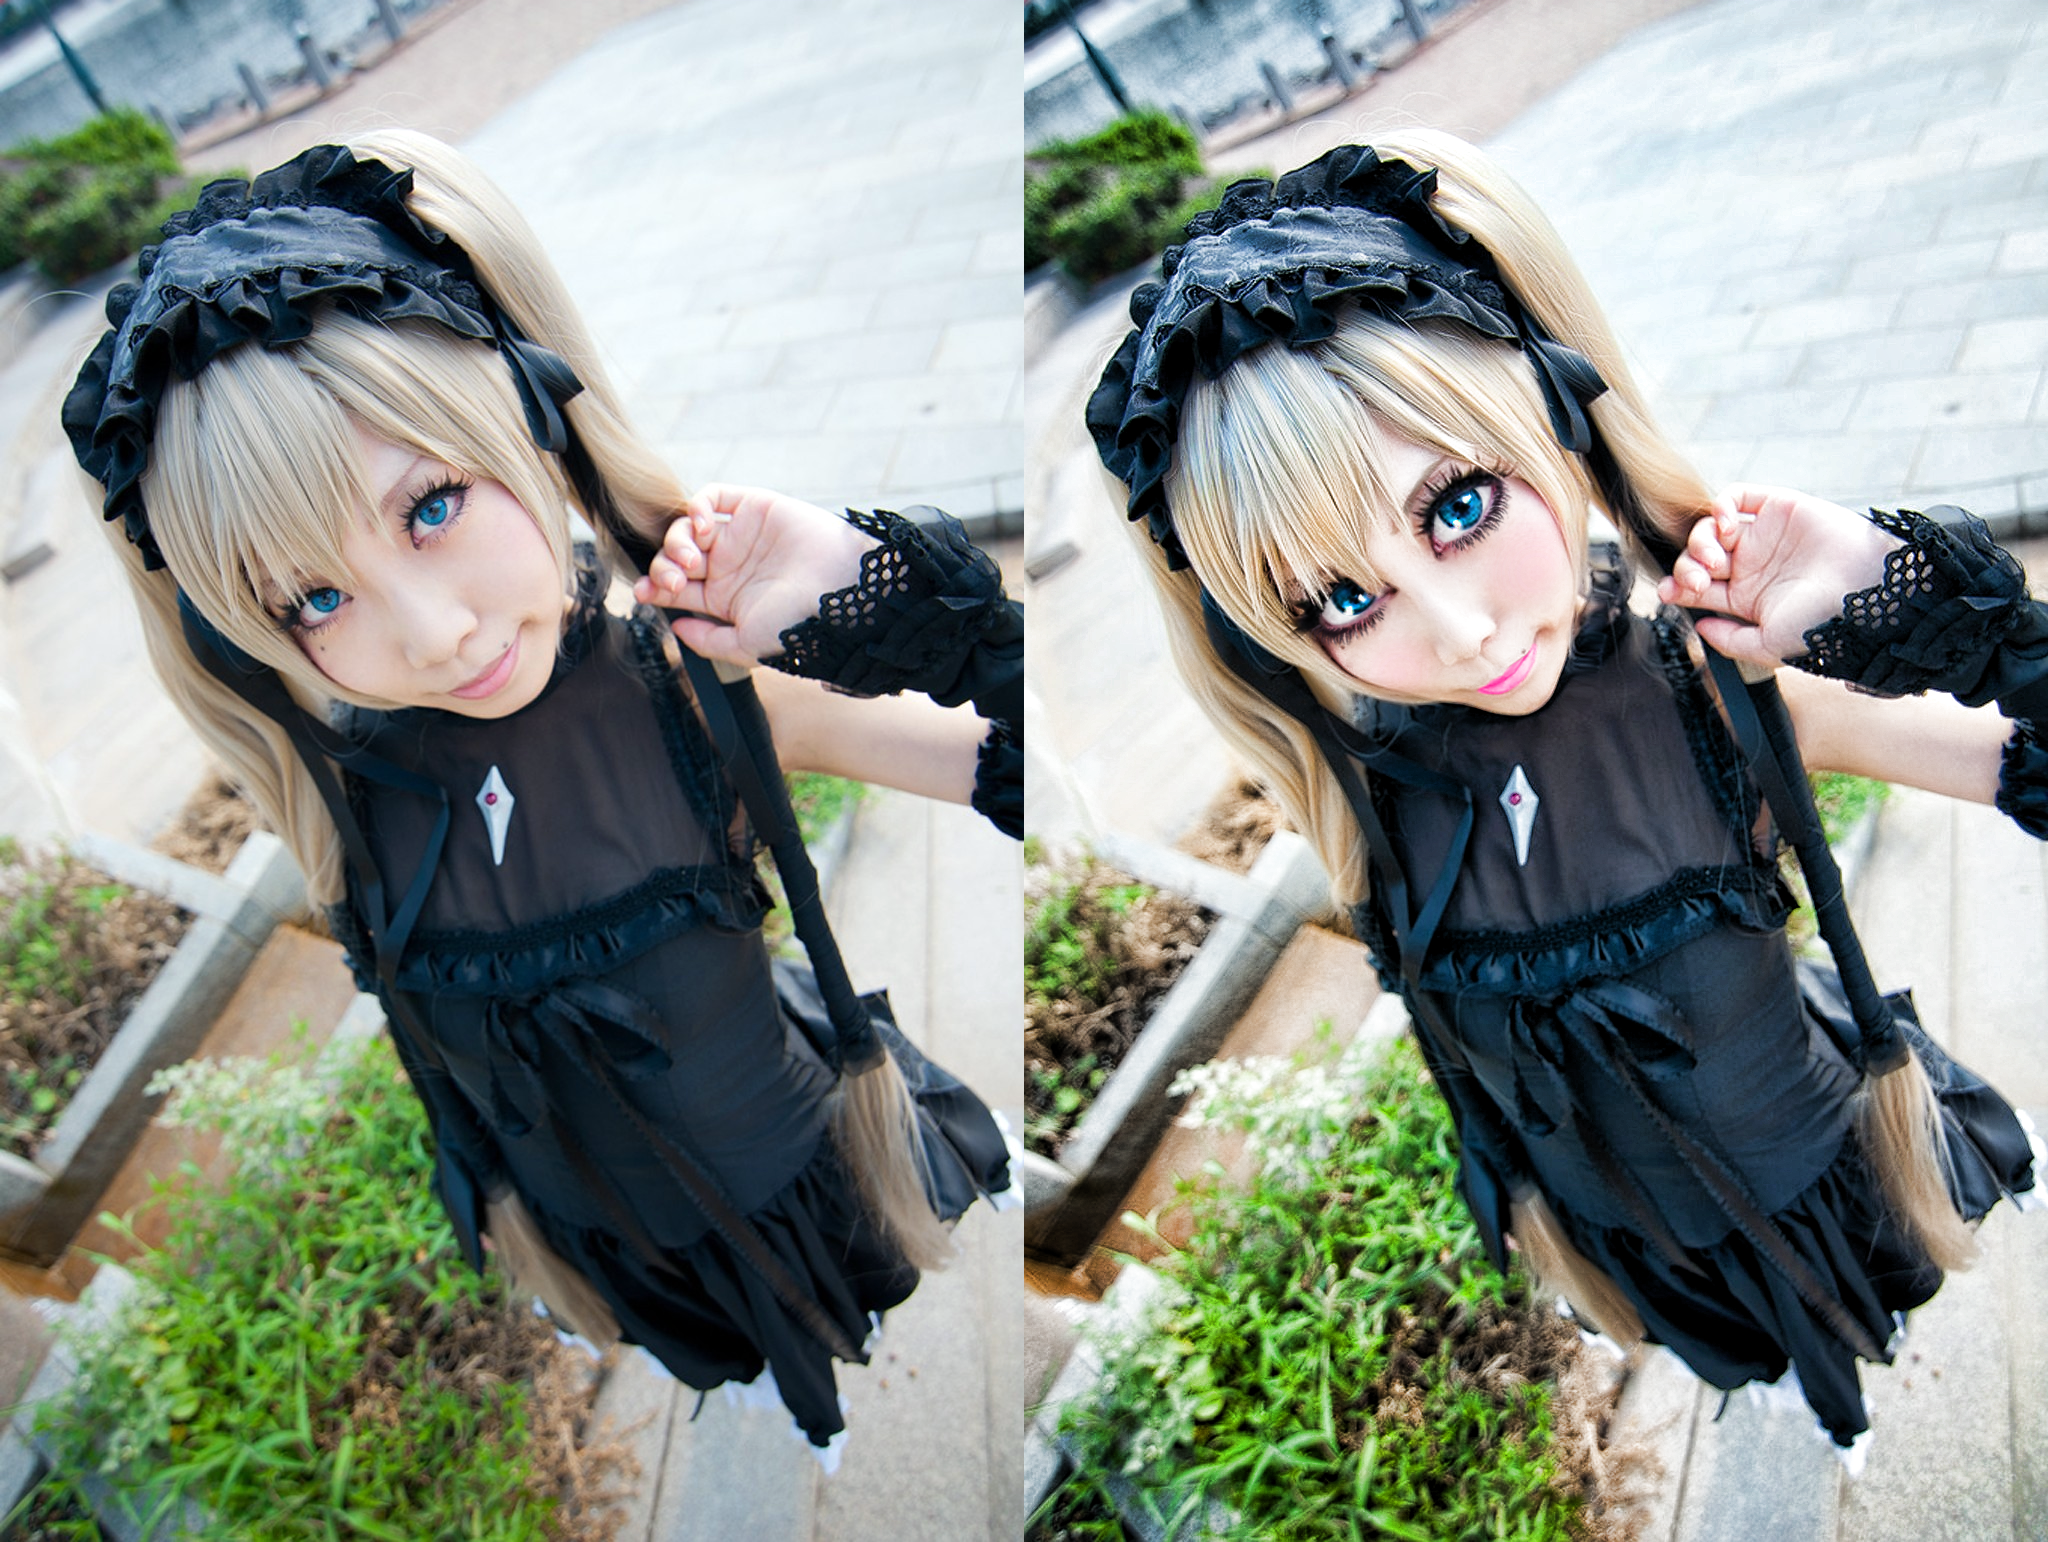 Anime Characters In Real Life : Real life anime by ethanox on deviantart